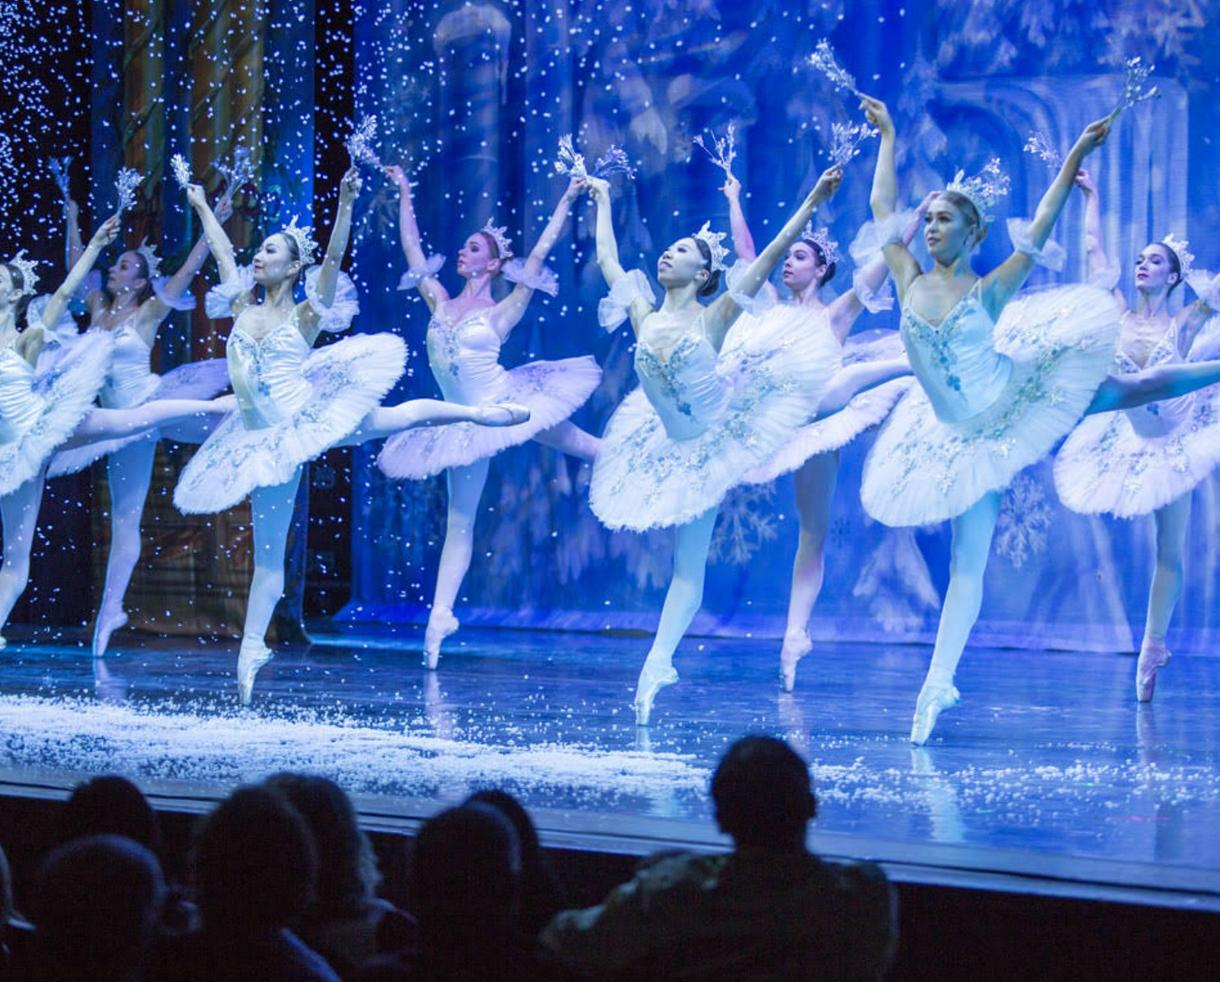 The Moscow Ballet's Great Russian Nutcracker at The Miller Theatre